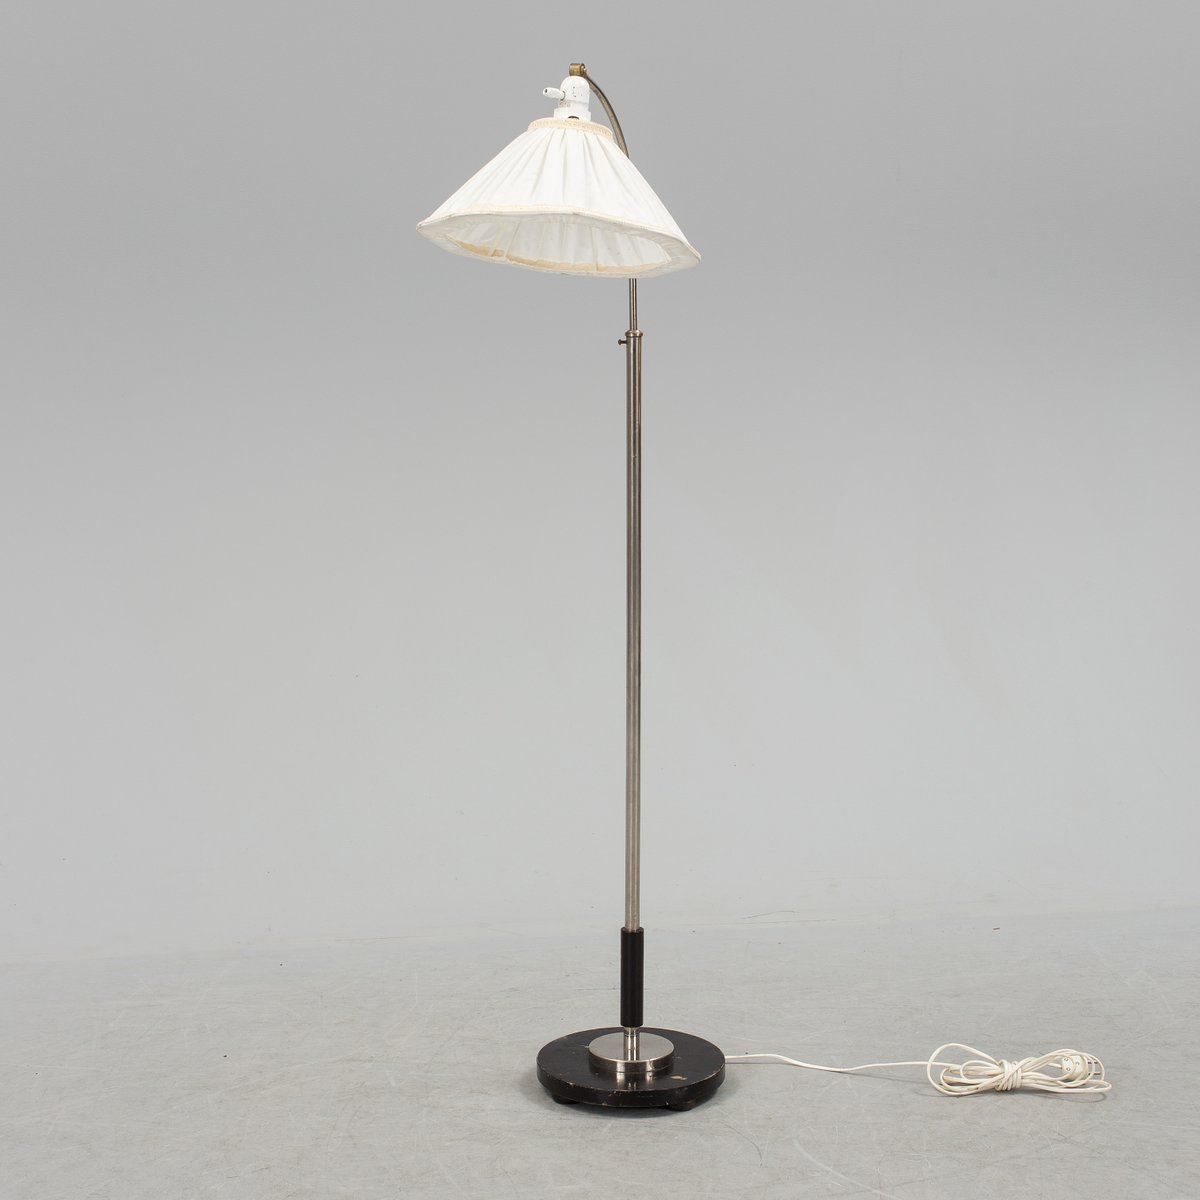 Scandinavian Art Deco Floor Lamp from Zenith, 1930s for sale at Pamono